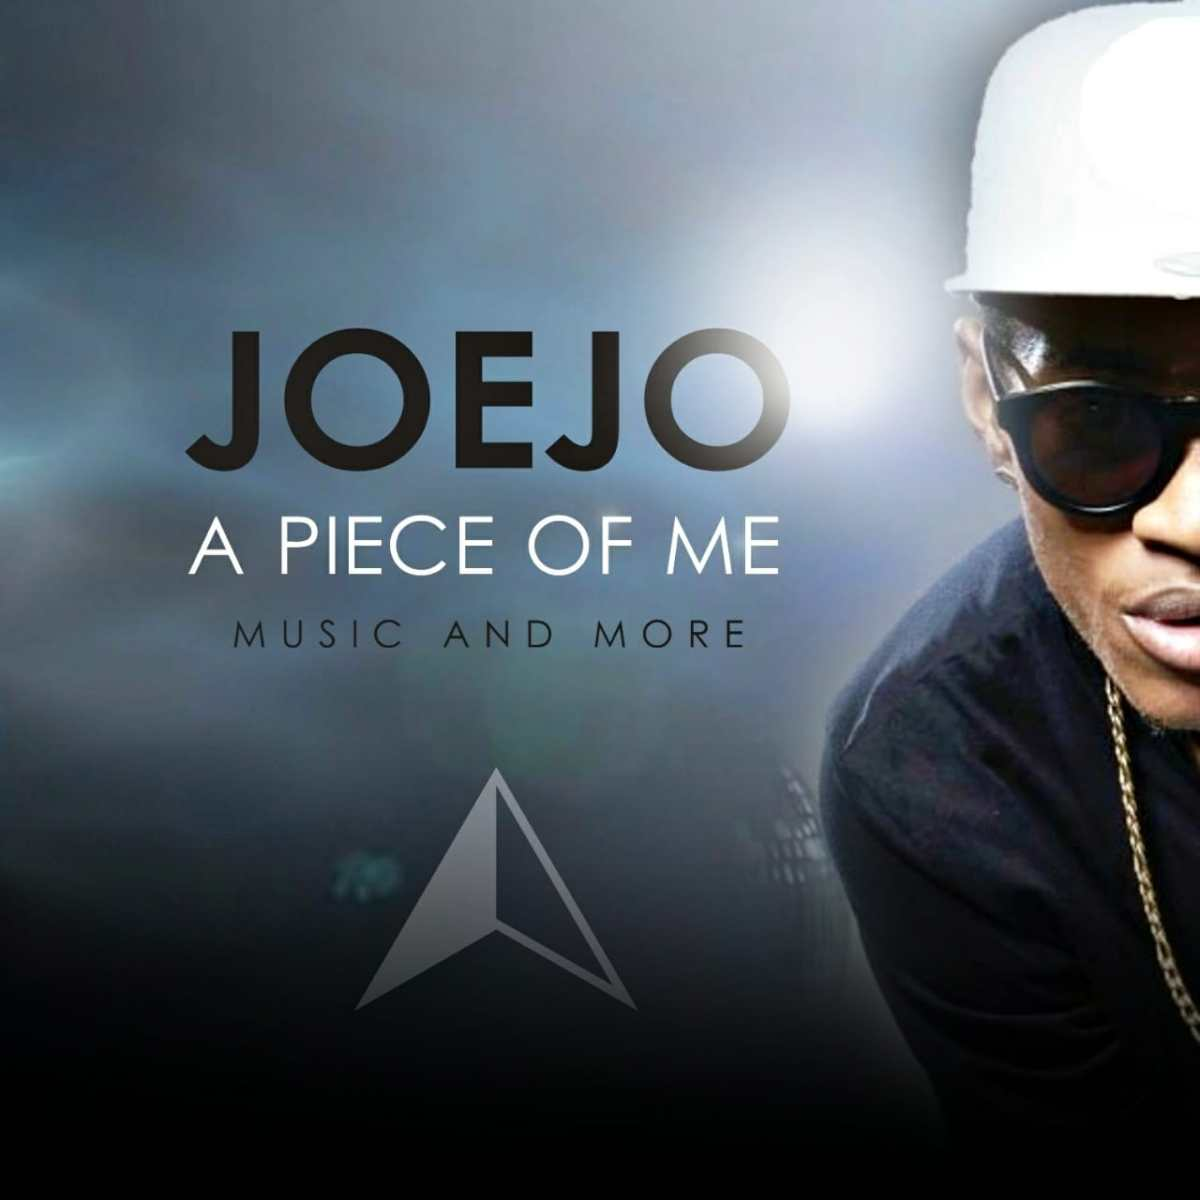 Joejo - A Piece Of Me (Music and More) EP